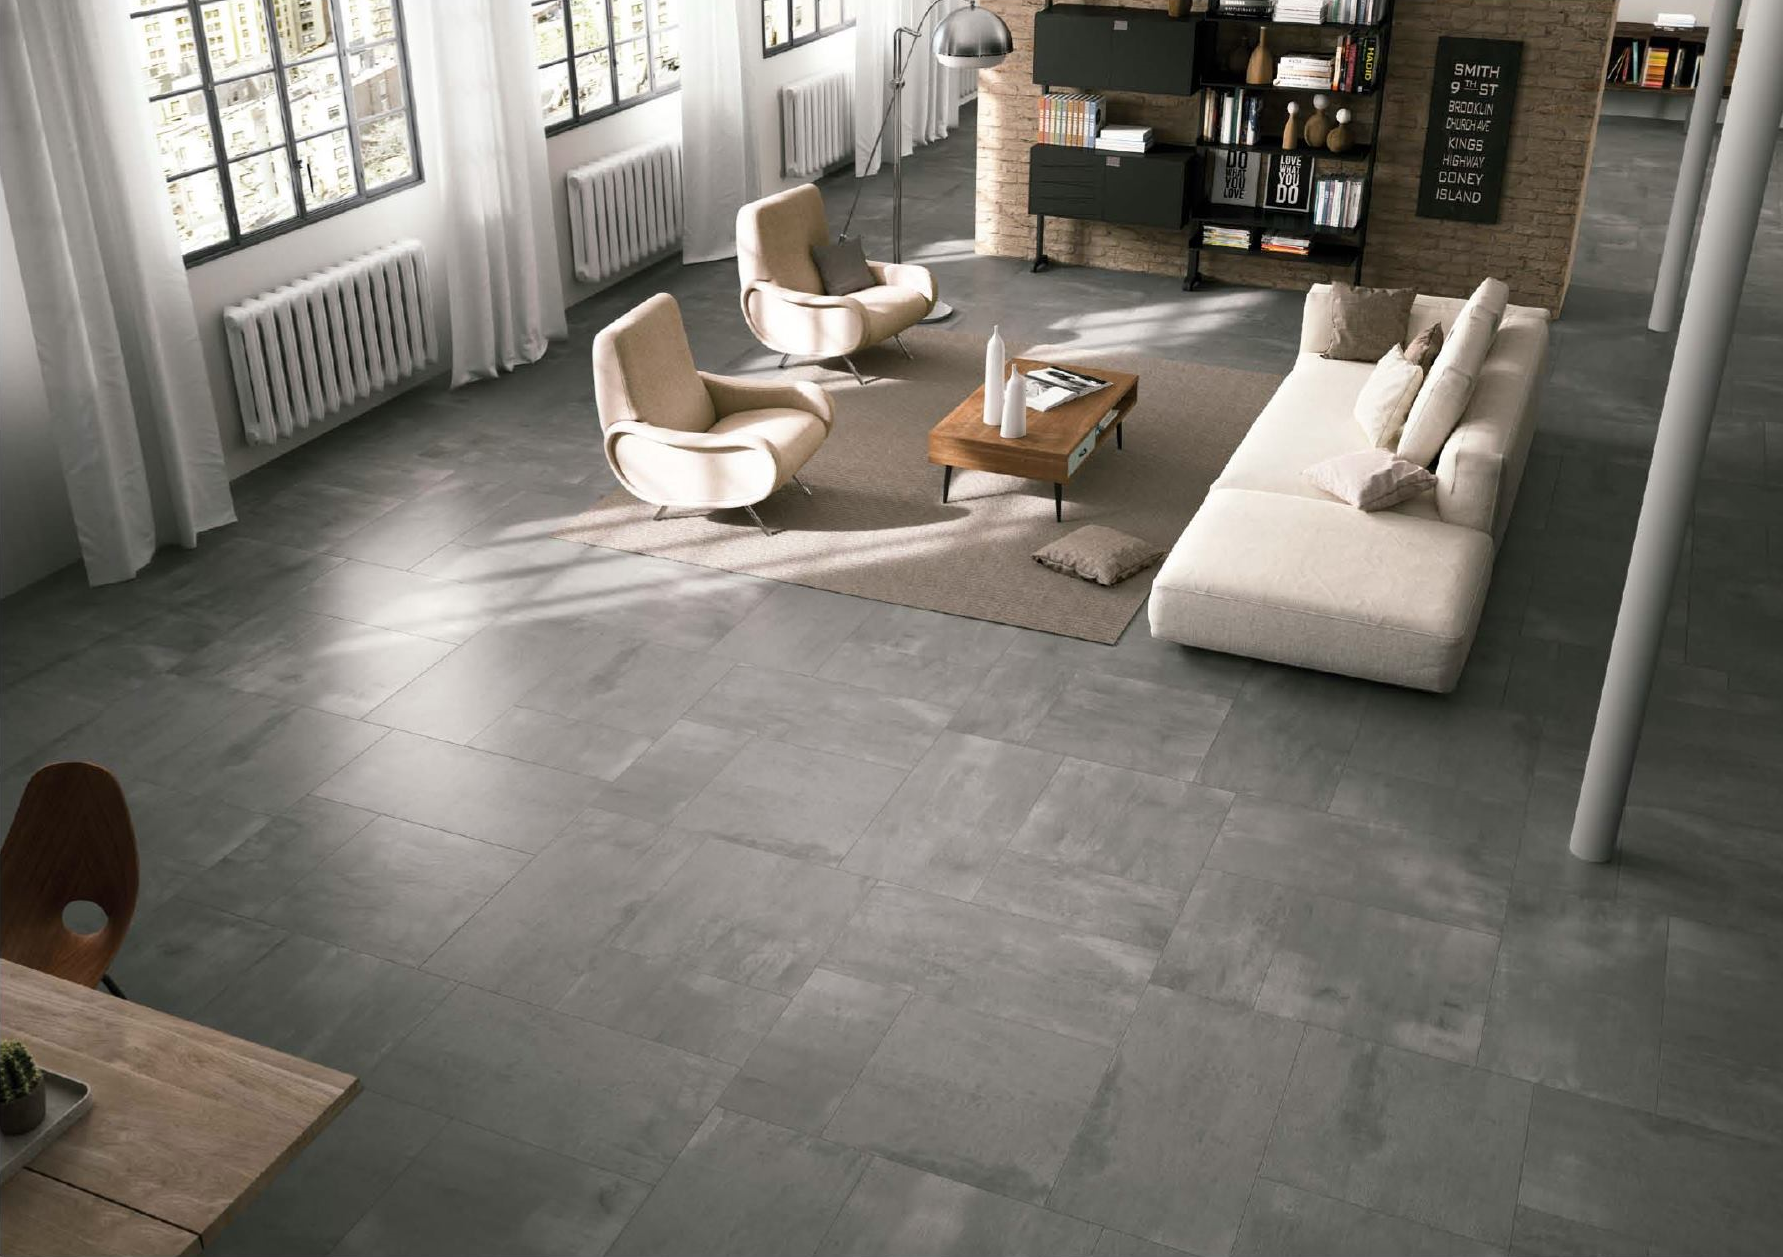 Creative Concrete Tiles Singapore Malford Ceramics Pte